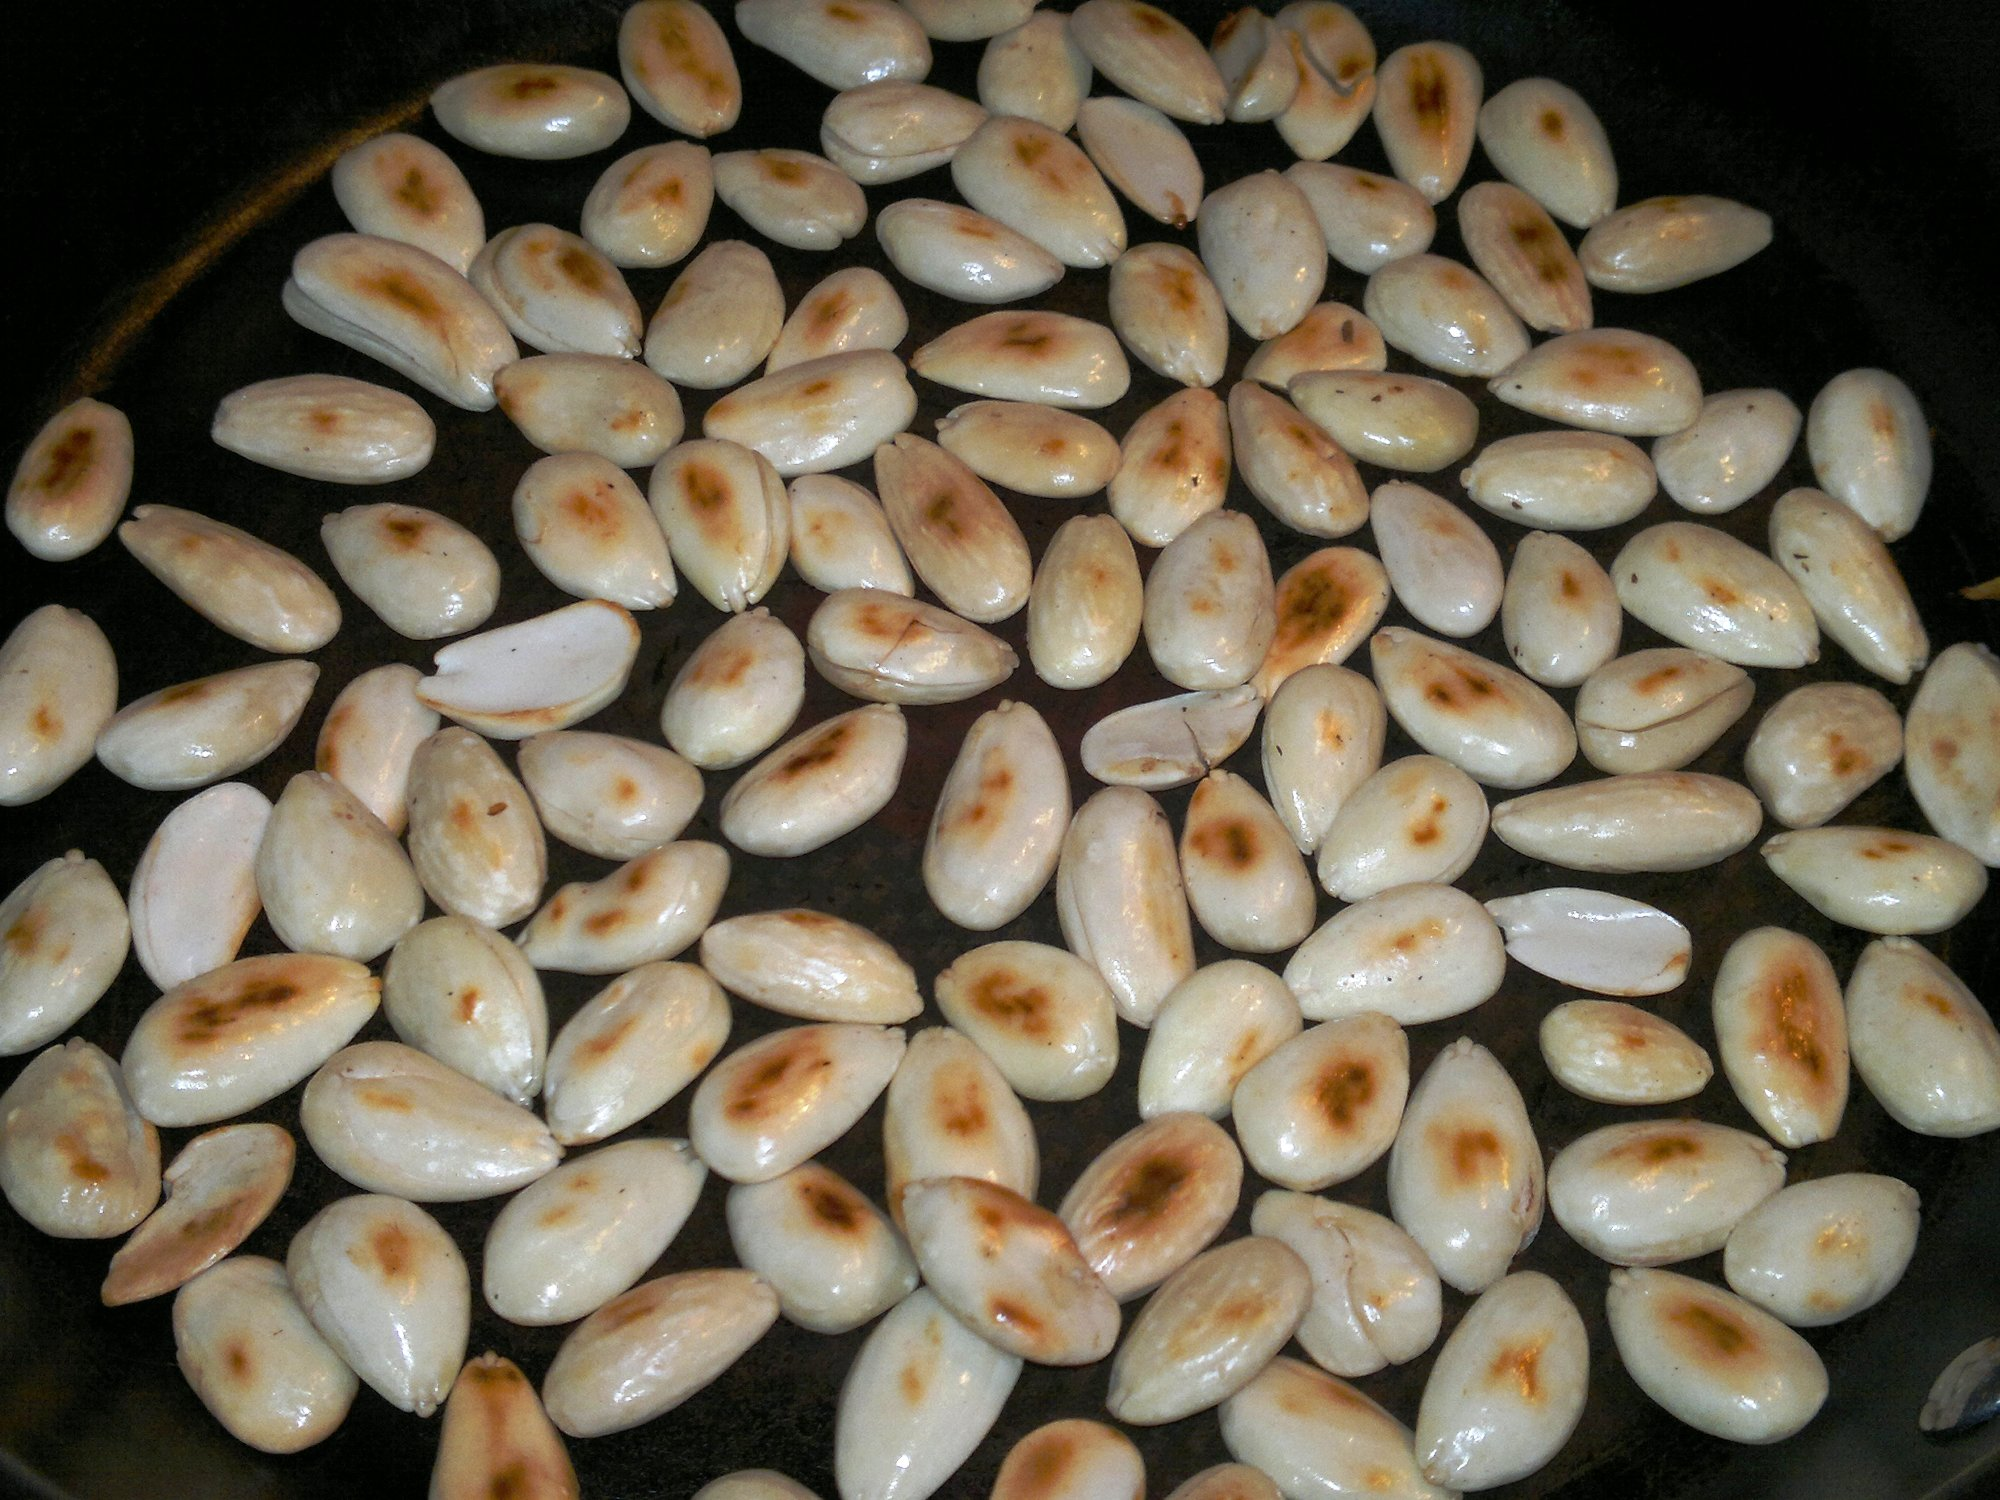 Blanched and toasted almonds replace the more usual pine nuts